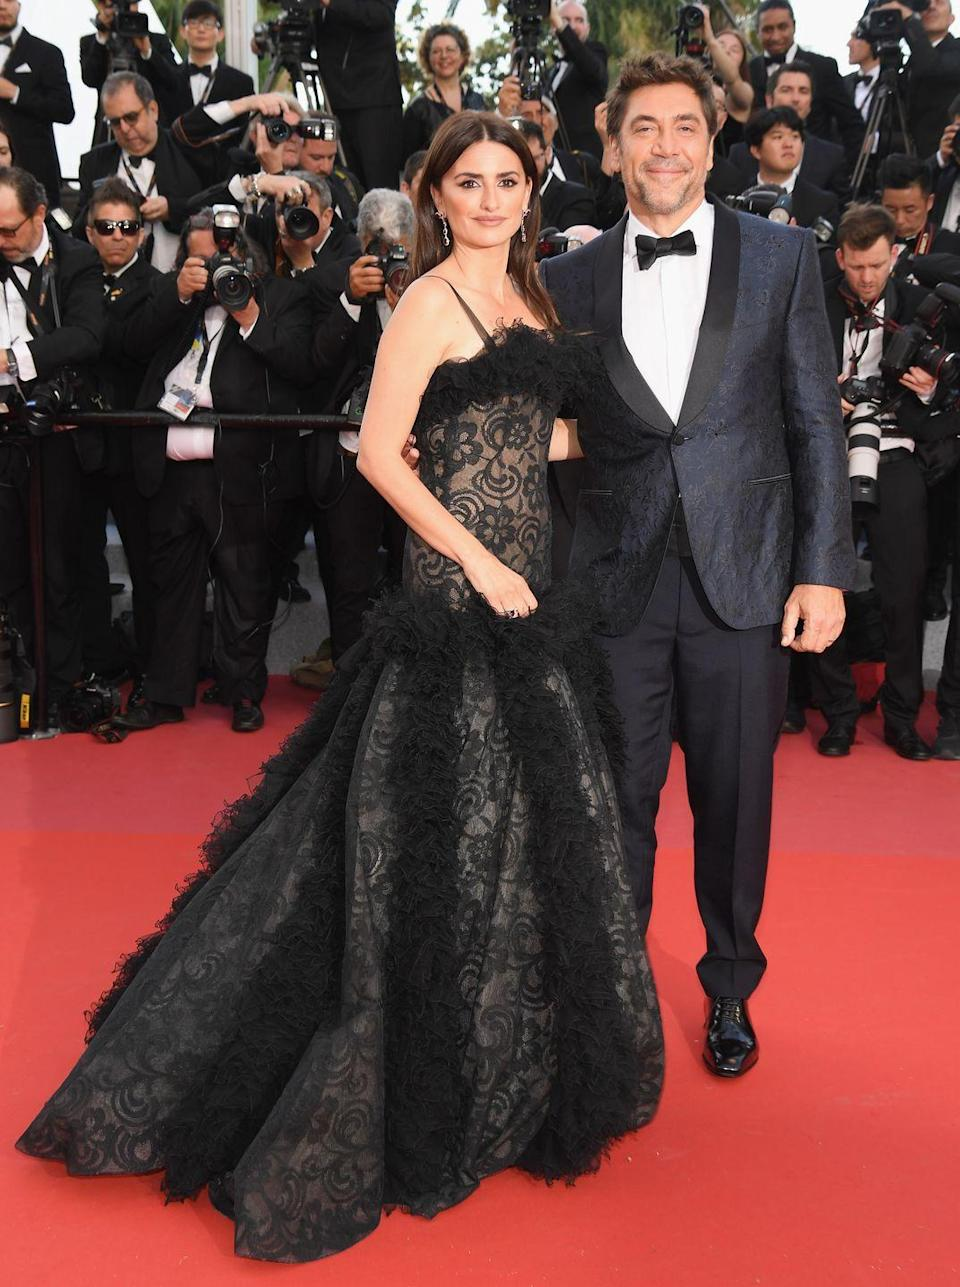 """<p>Penélope and Matthew didn't work out, but she seems rather happy with husband Javier Bardem. The pair met in 1992 on the set of Jamón Jamón, but they fell in love while filming Woody Allen's Vicky Christina Barcelona. The couple became <a href=""""https://www.oprahmag.com/entertainment/a28137116/penelope-cruz-husband-javier-bardem/"""" rel=""""nofollow noopener"""" target=""""_blank"""" data-ylk=""""slk:official in 2007"""" class=""""link rapid-noclick-resp"""">official in 2007</a> but didn't make their first public appearance until 2010. Penélope and Javier wed that same year and have maintained a pretty low-key marriage.</p>"""